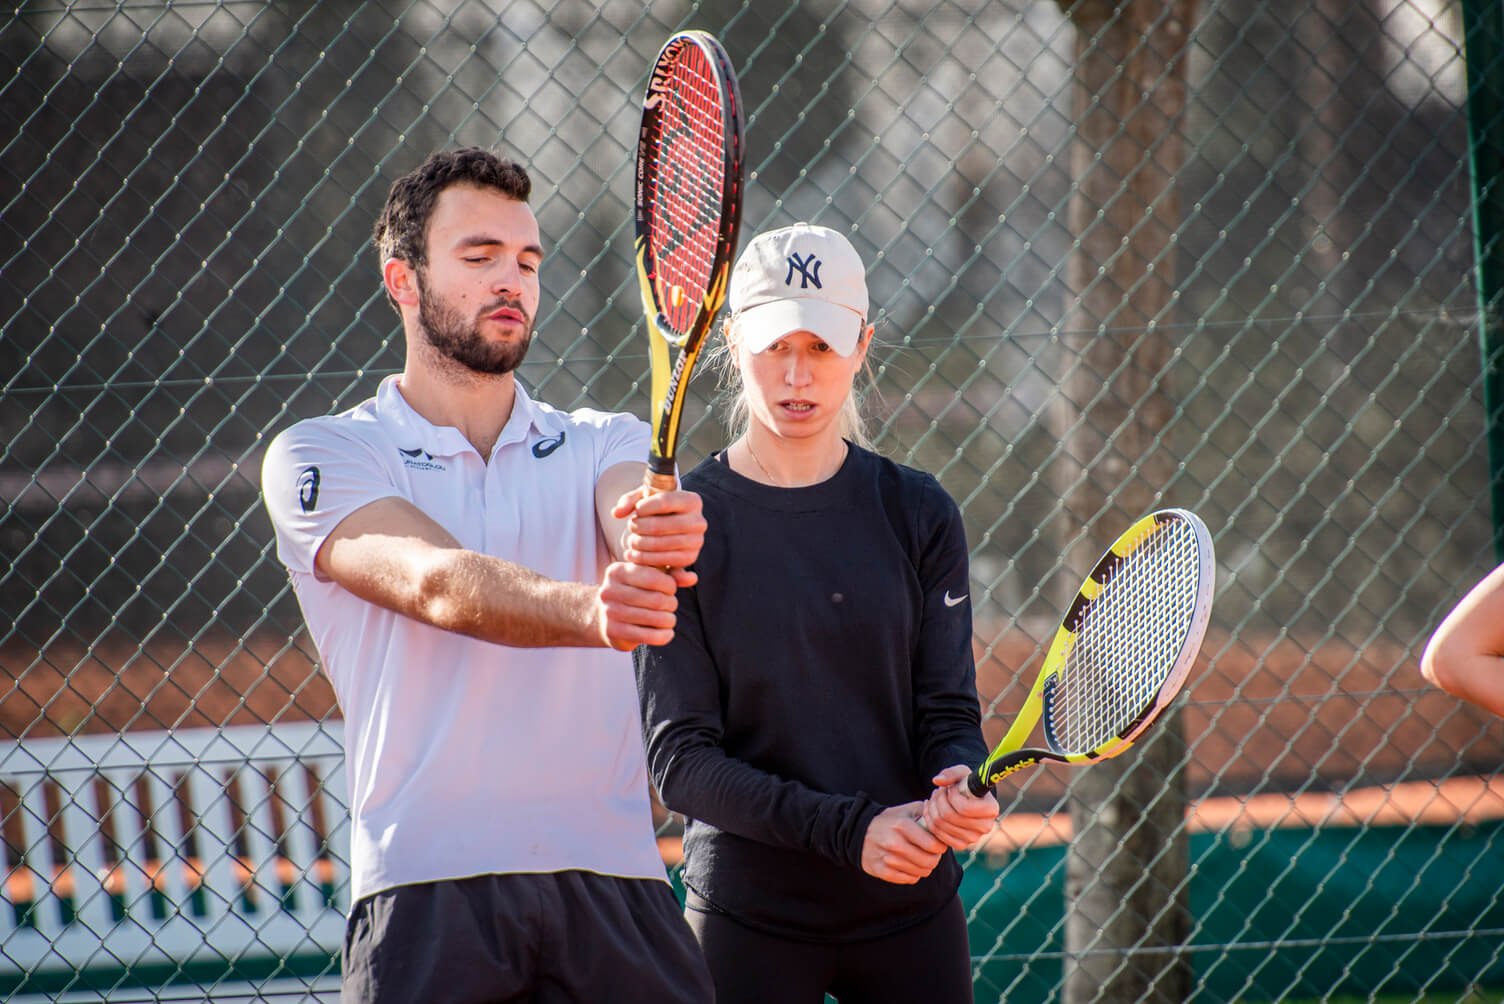 coaching tennis one to one